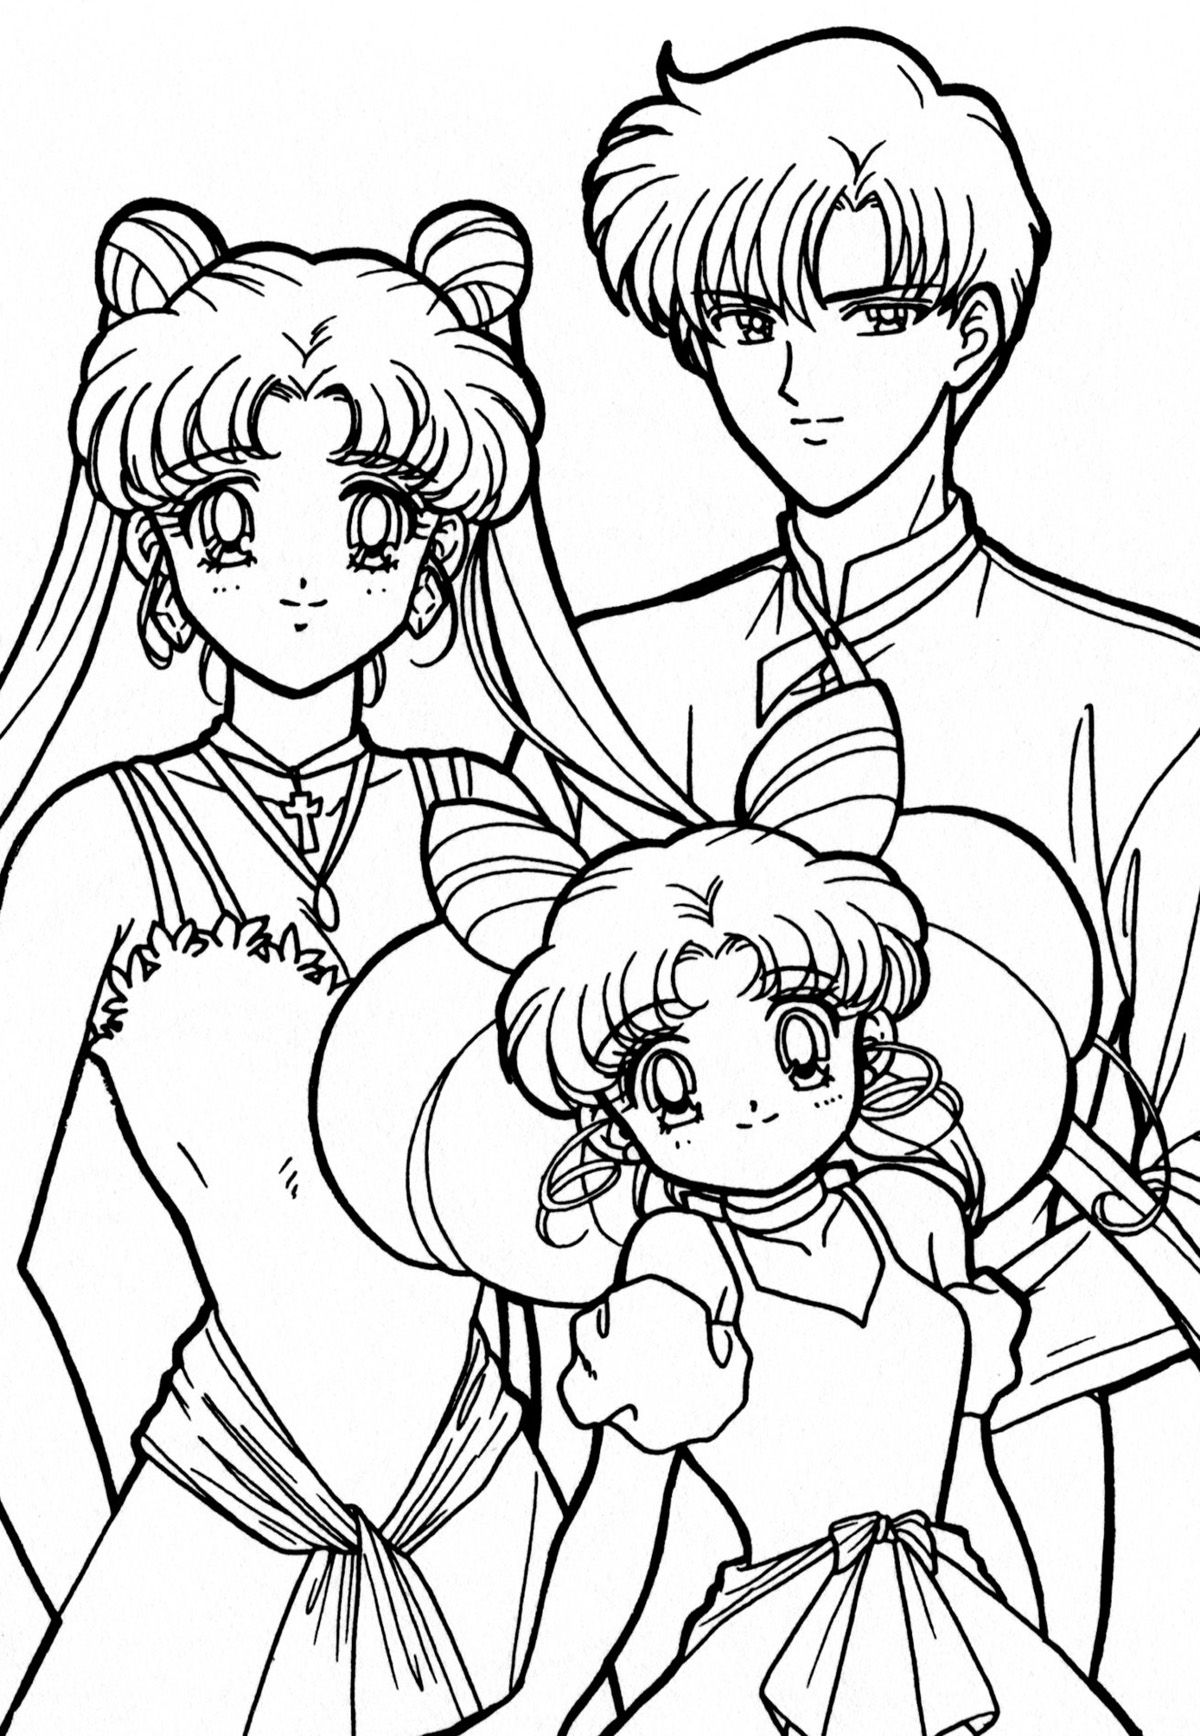 usagi mamoru and chibiusa coloring page sailormoon sailor